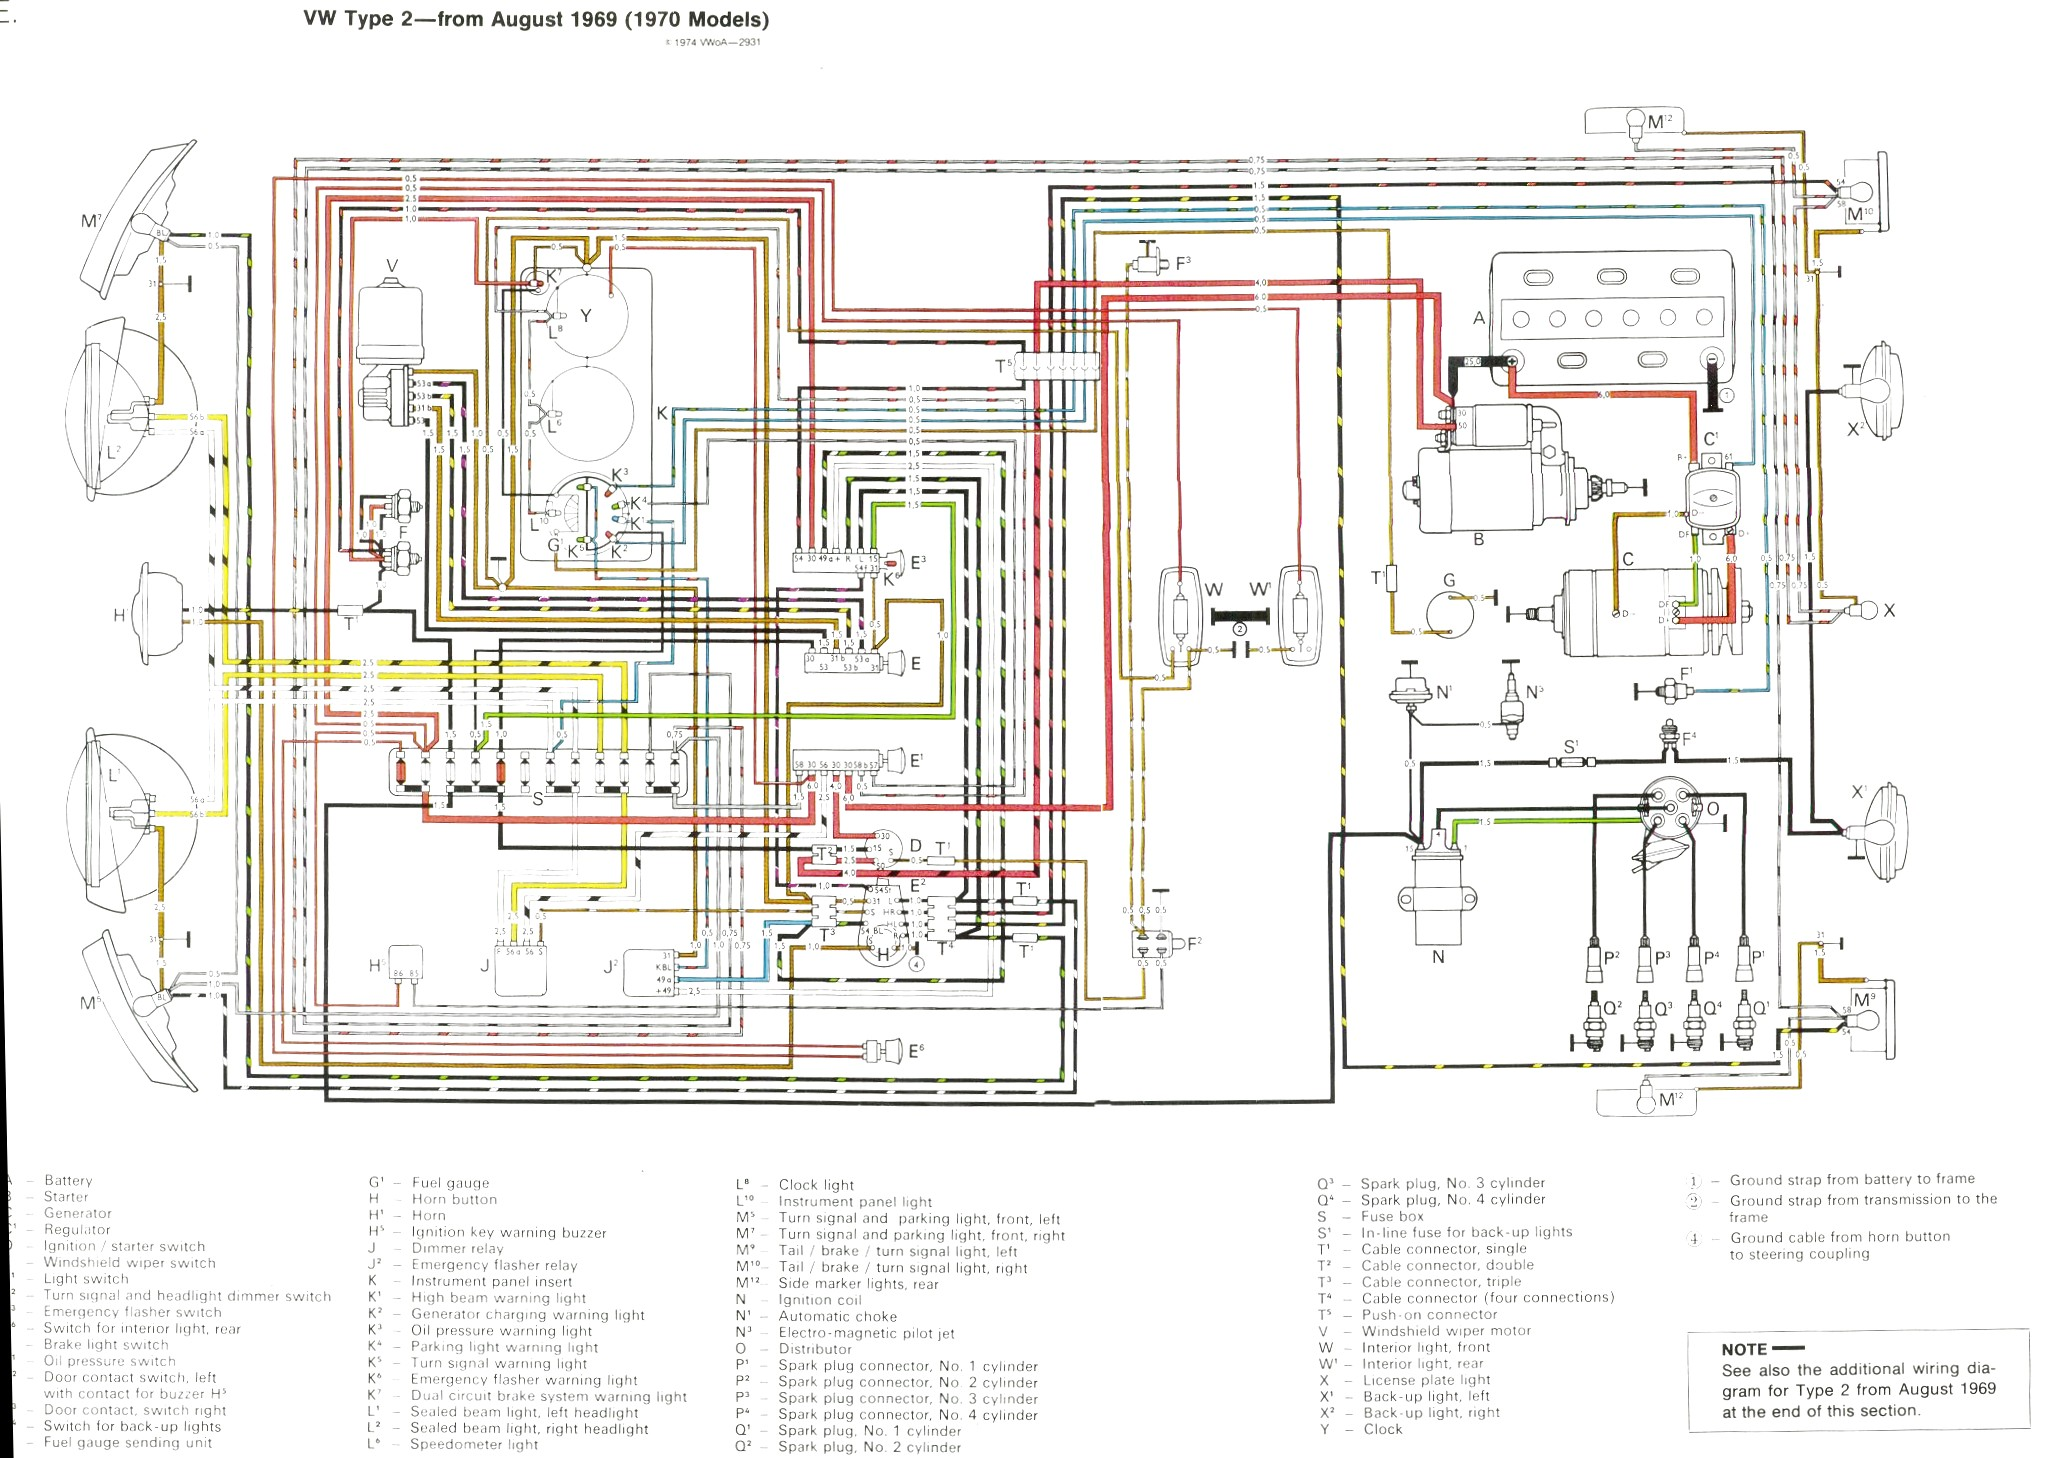 vintagebus com vw bus (and other) wiring diagrams 1980 Club Car Wiring Diagram com vw bus (and other) wiring diagrams